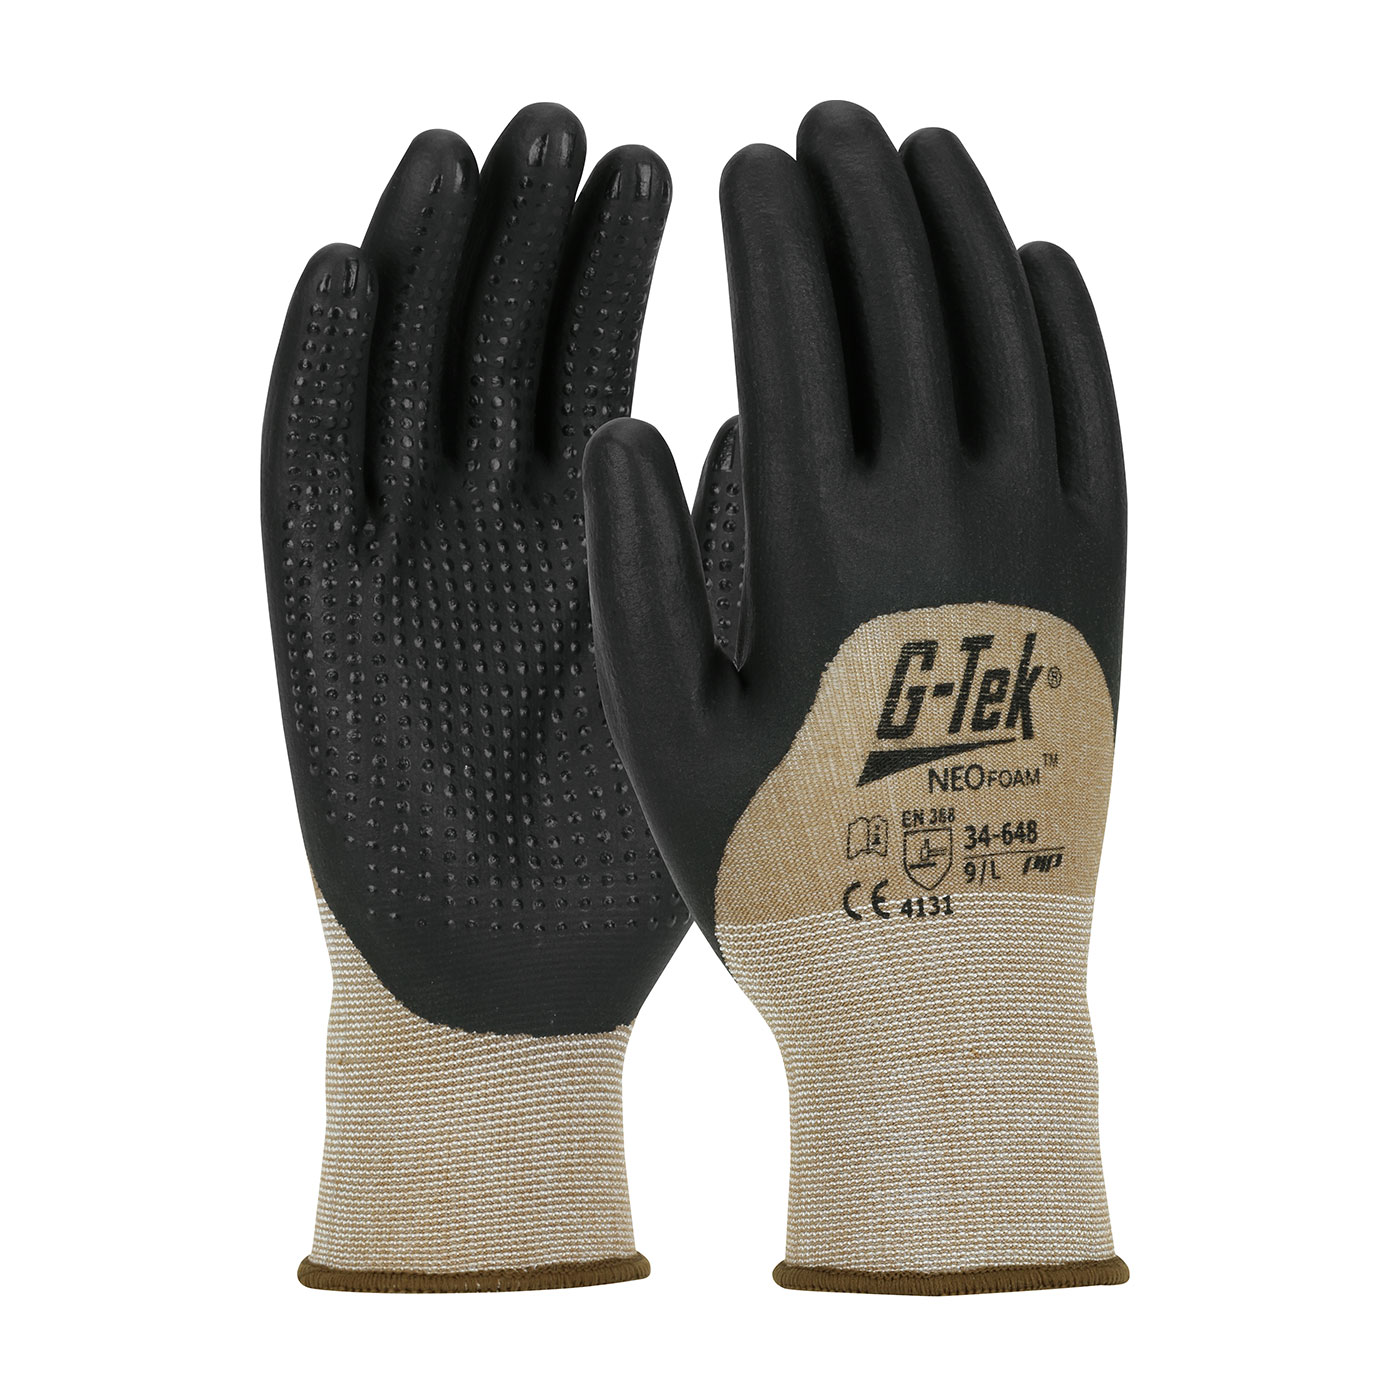 #34-648 PIP® G-Tek® Neofoam Micro Dot Coated Seamless Nylon Knit Gloves